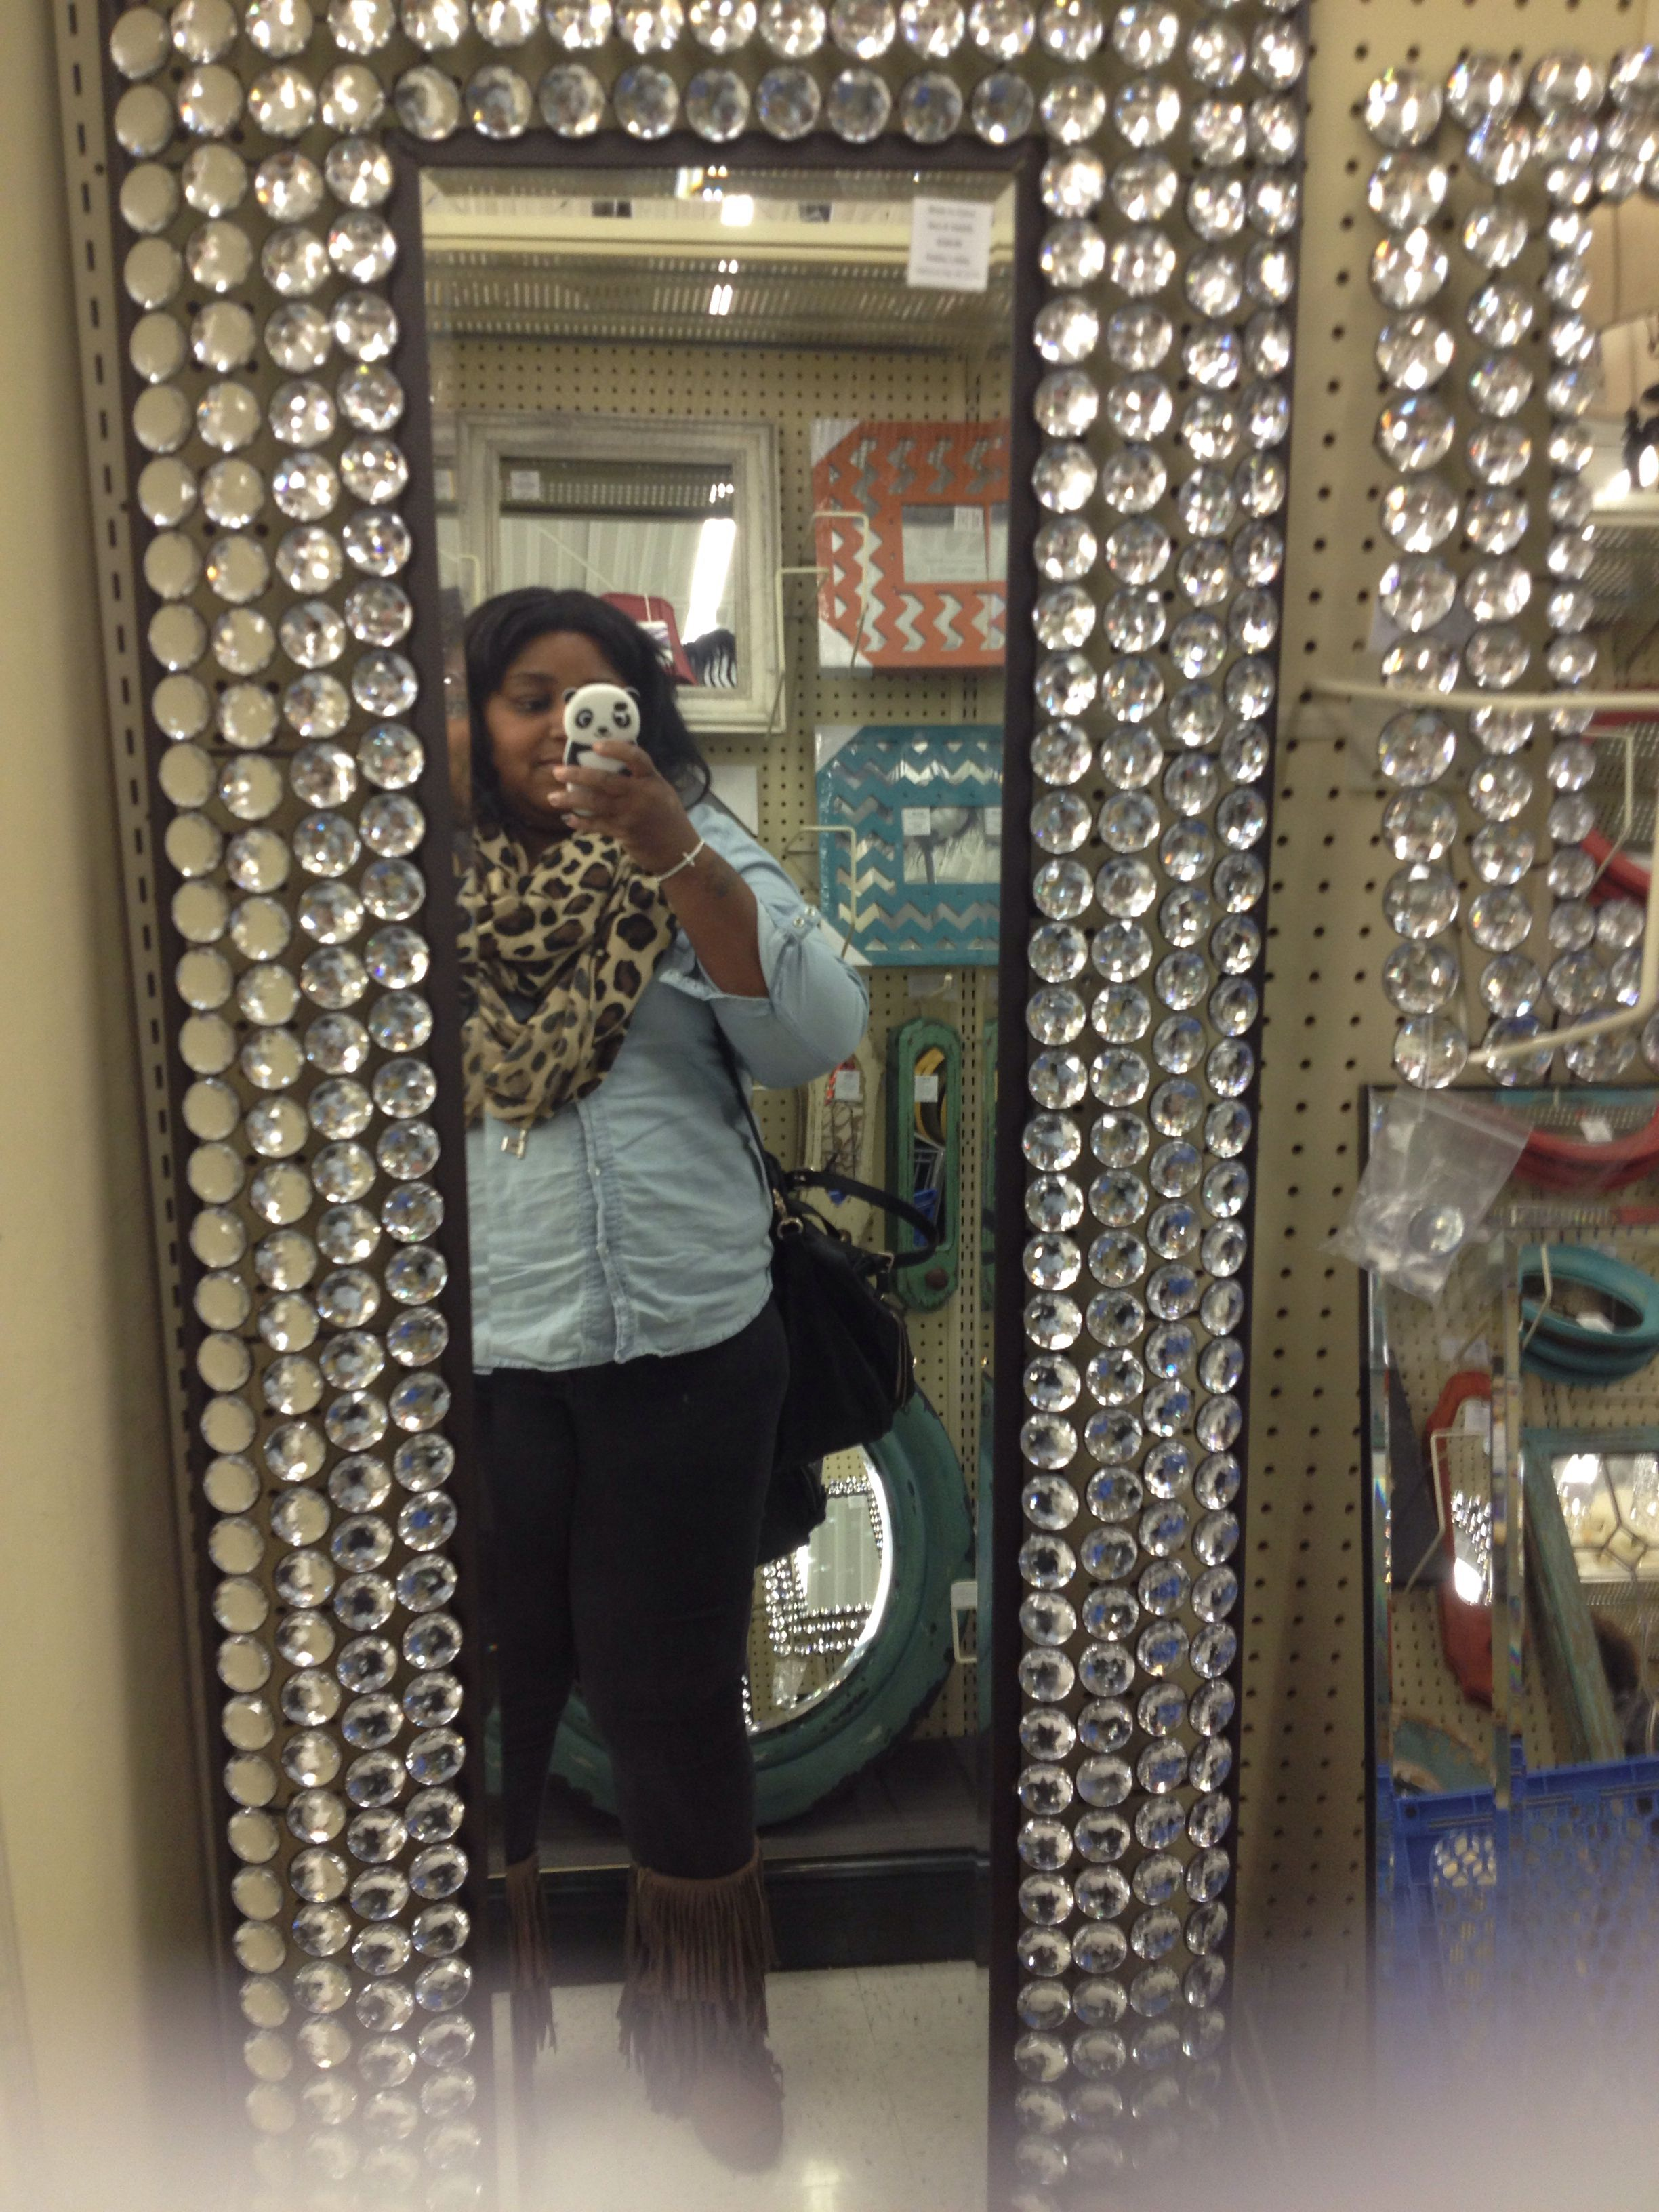 Hobby lobby mirror home decor pinterest for House of decorative accessories